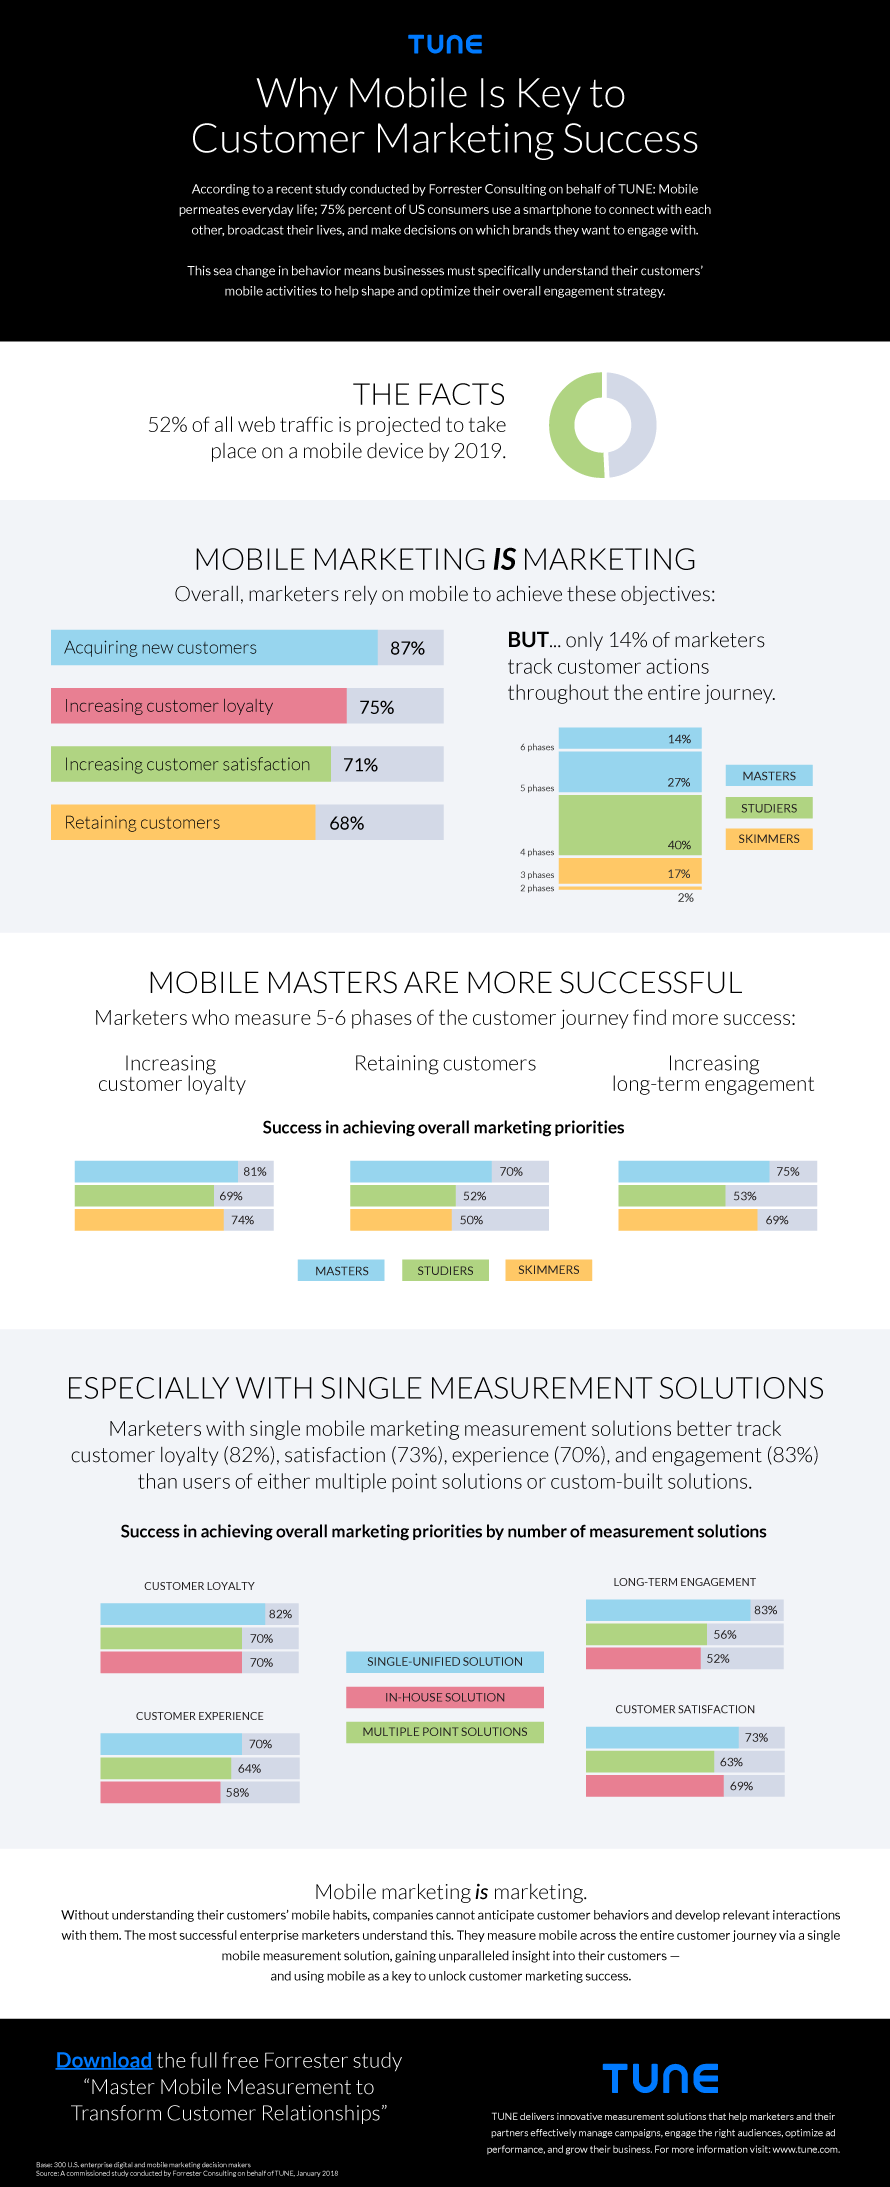 Why Mobile Is Key to Enterprise Customer Marketing Success Infographic